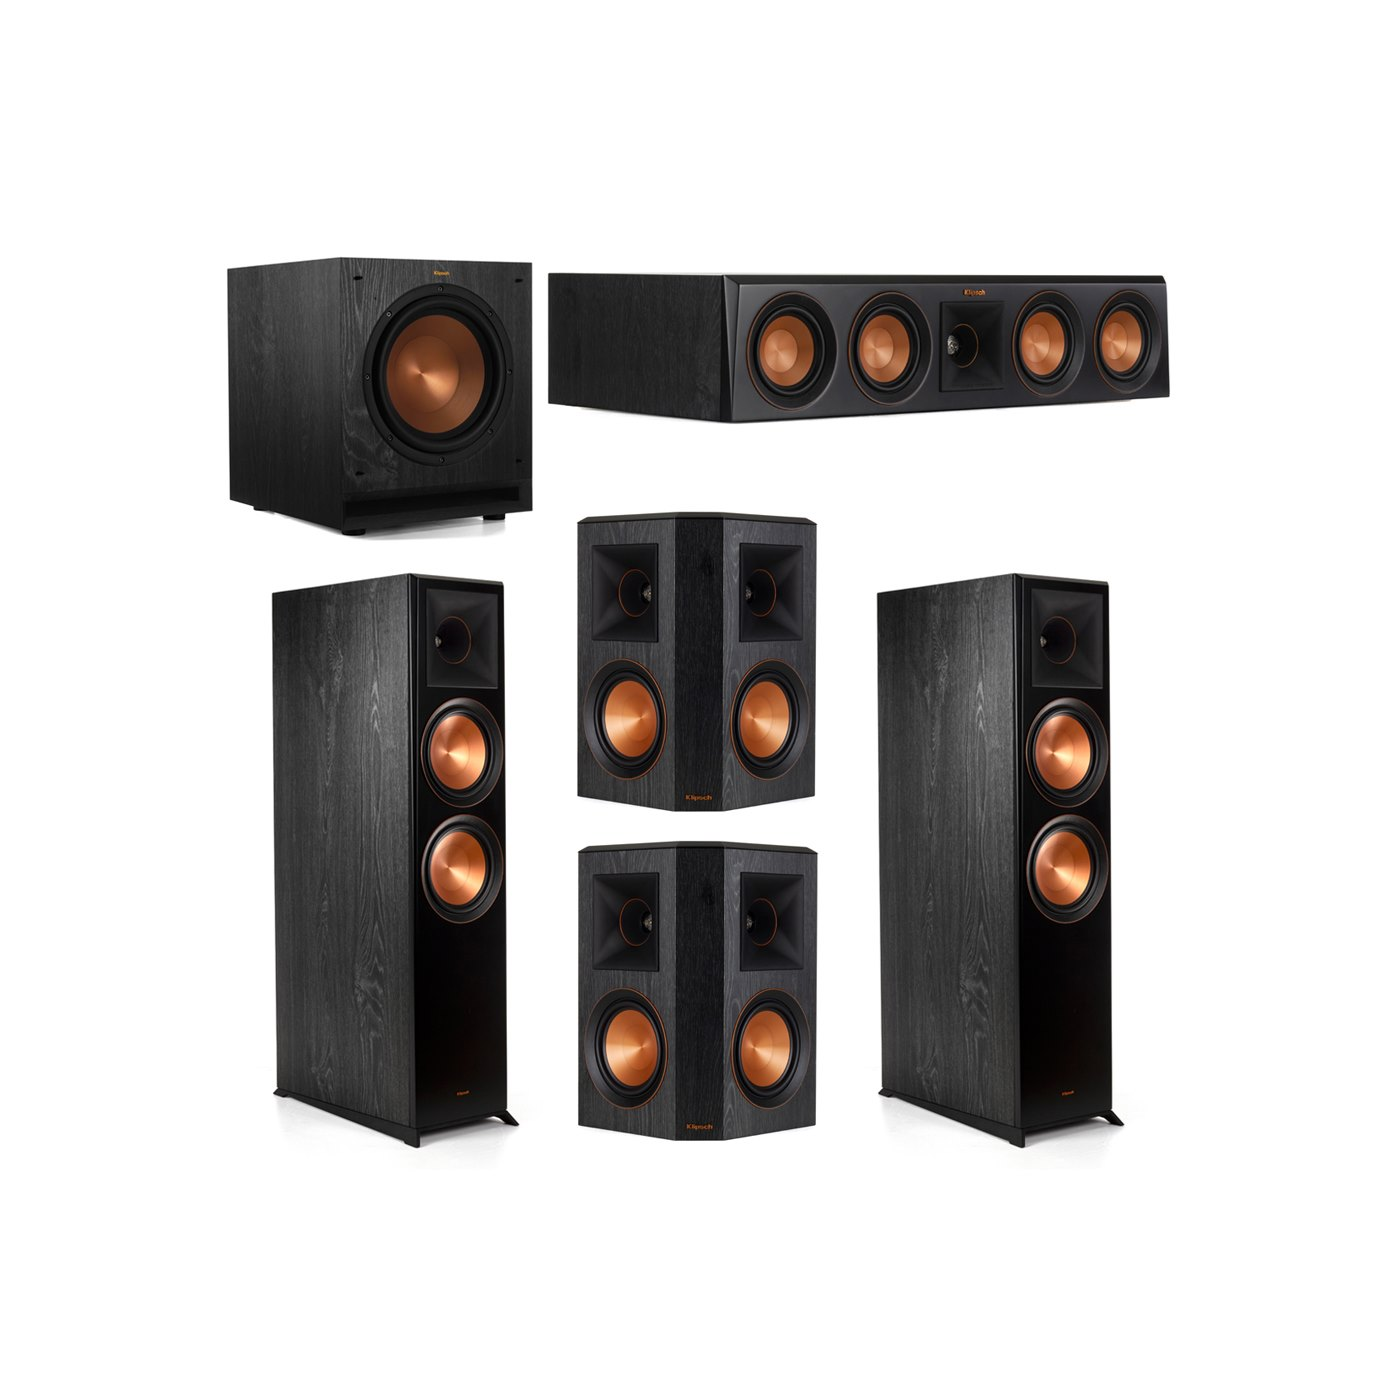 Klipsch 5.1.2 System - 2 RP-8060FA Dolby Atmos Speakers, 1 RP-404C, 2 RP-502S Speakers, 1 SPL-100